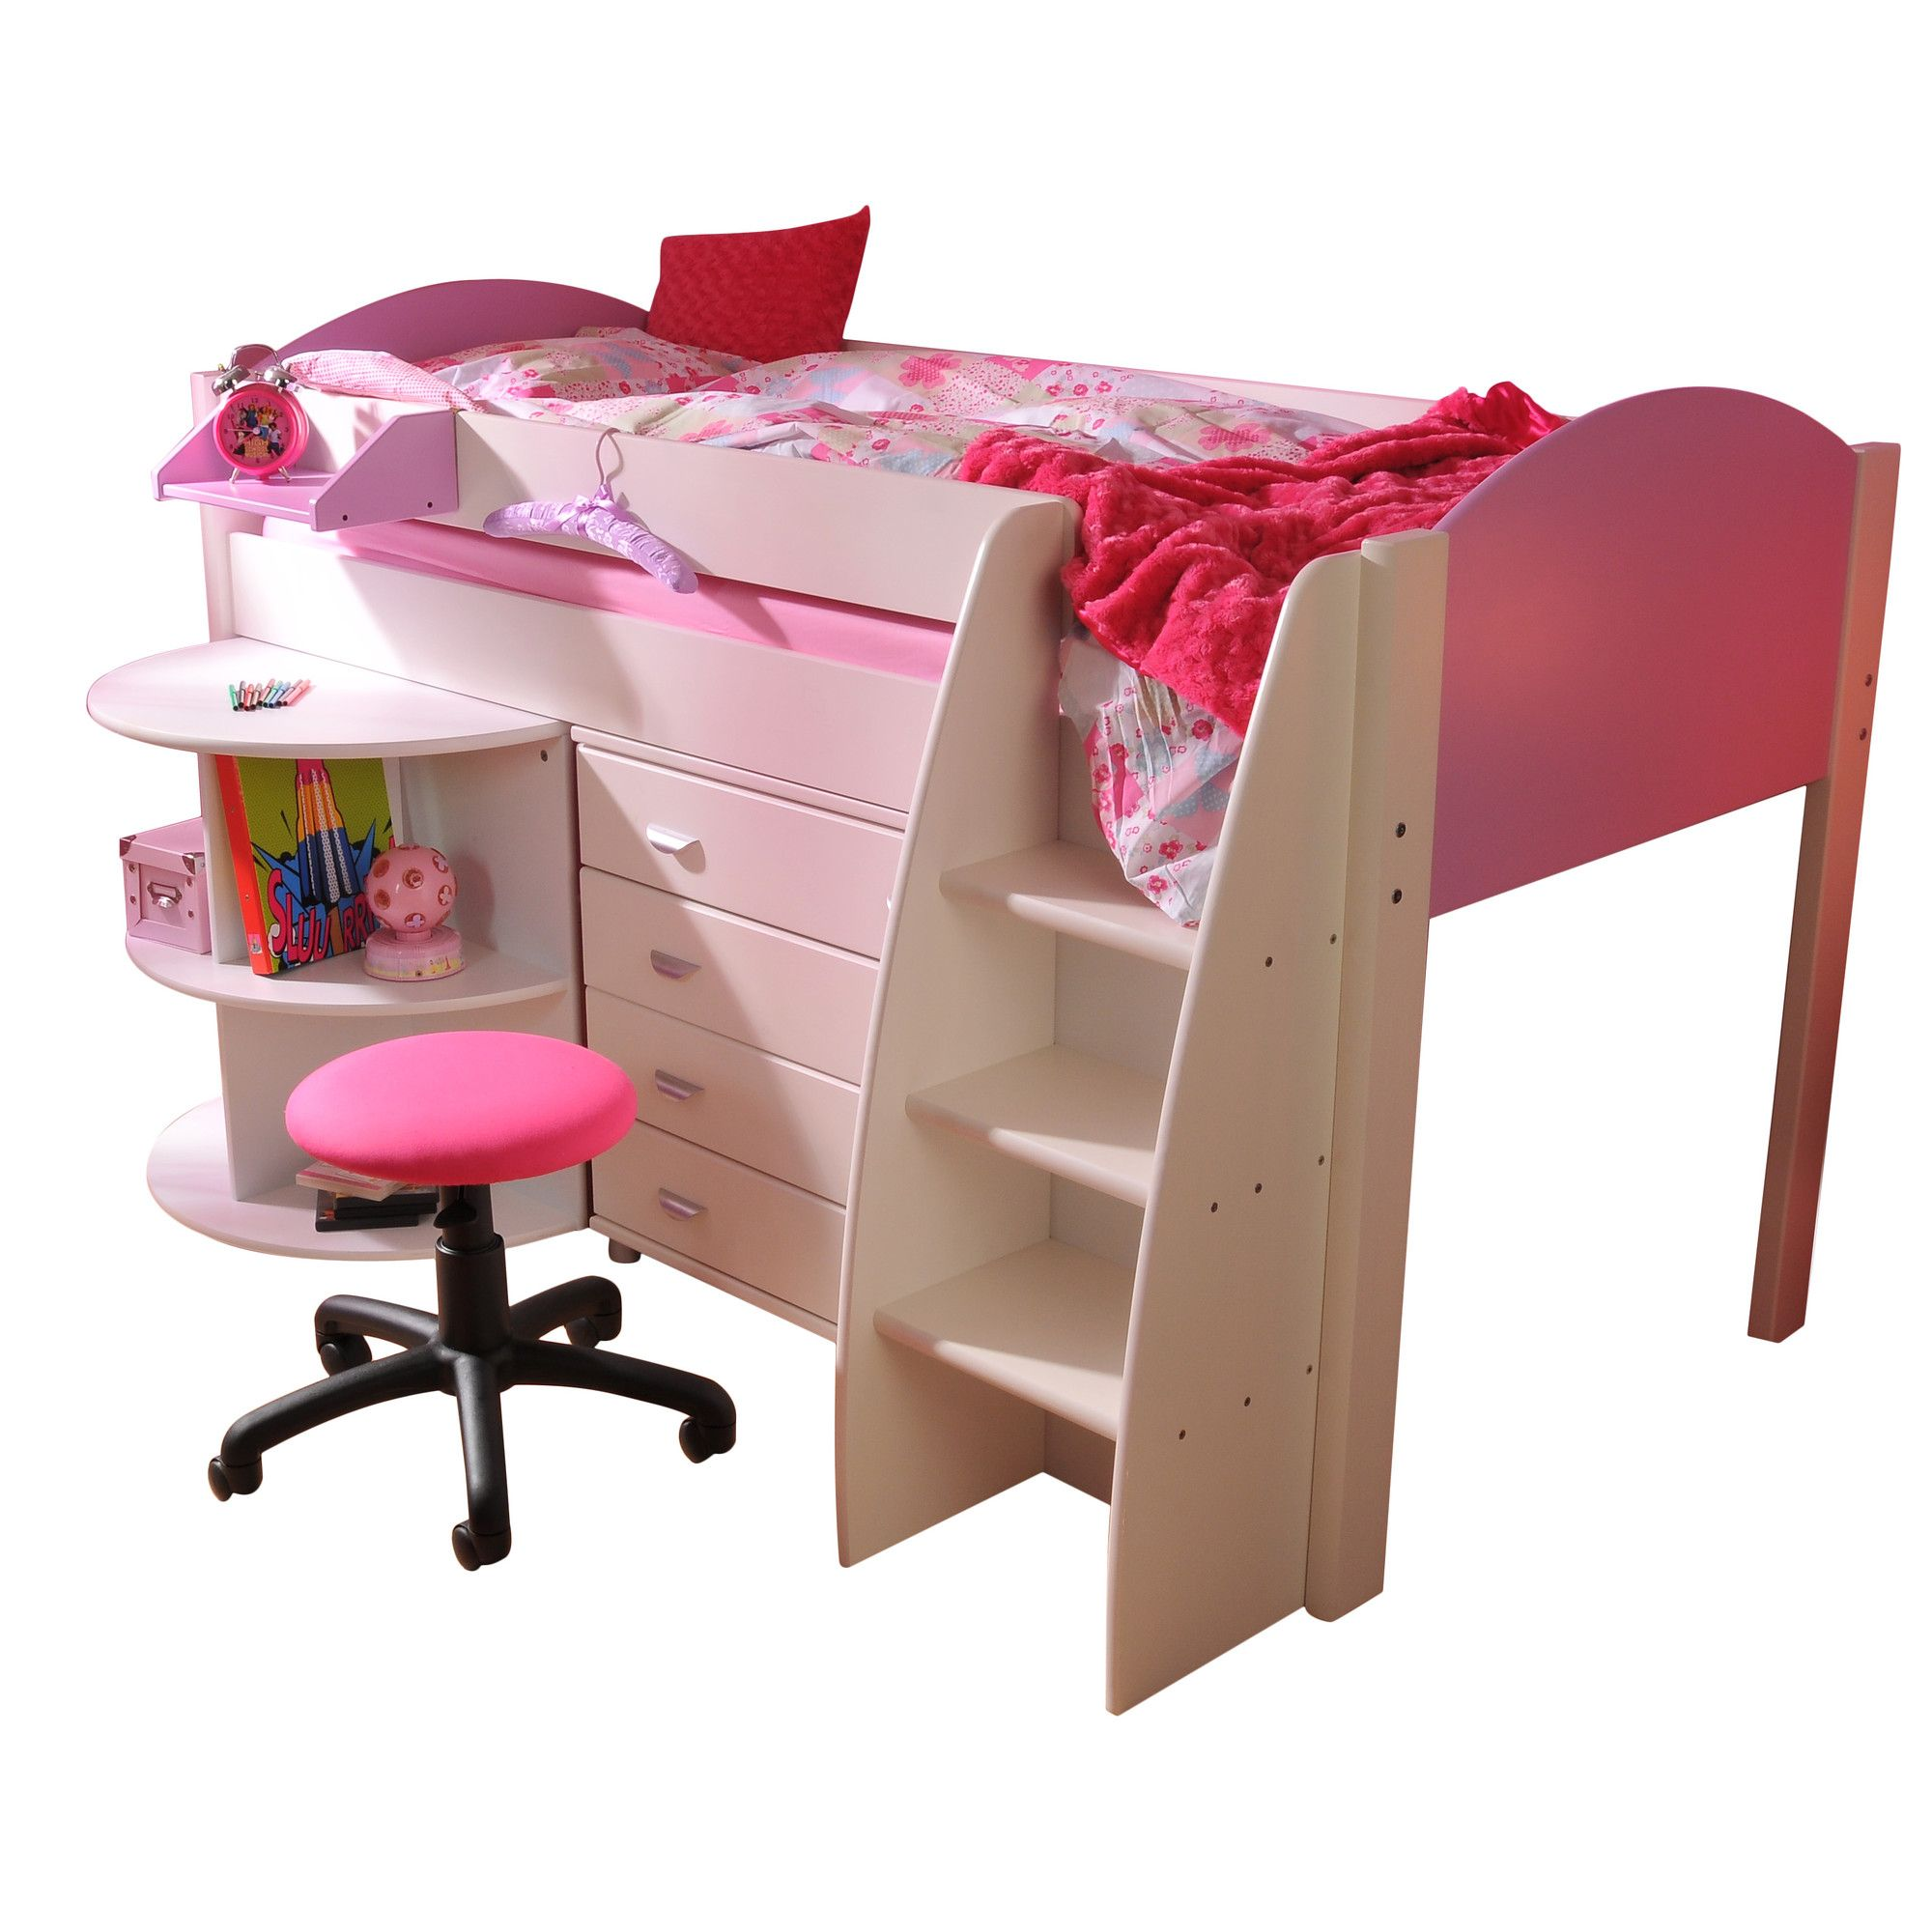 Stompa Rondo Mid Sleeper with 4 Drawer Chest and Extending Desk - Antique - White at Tescos Direct